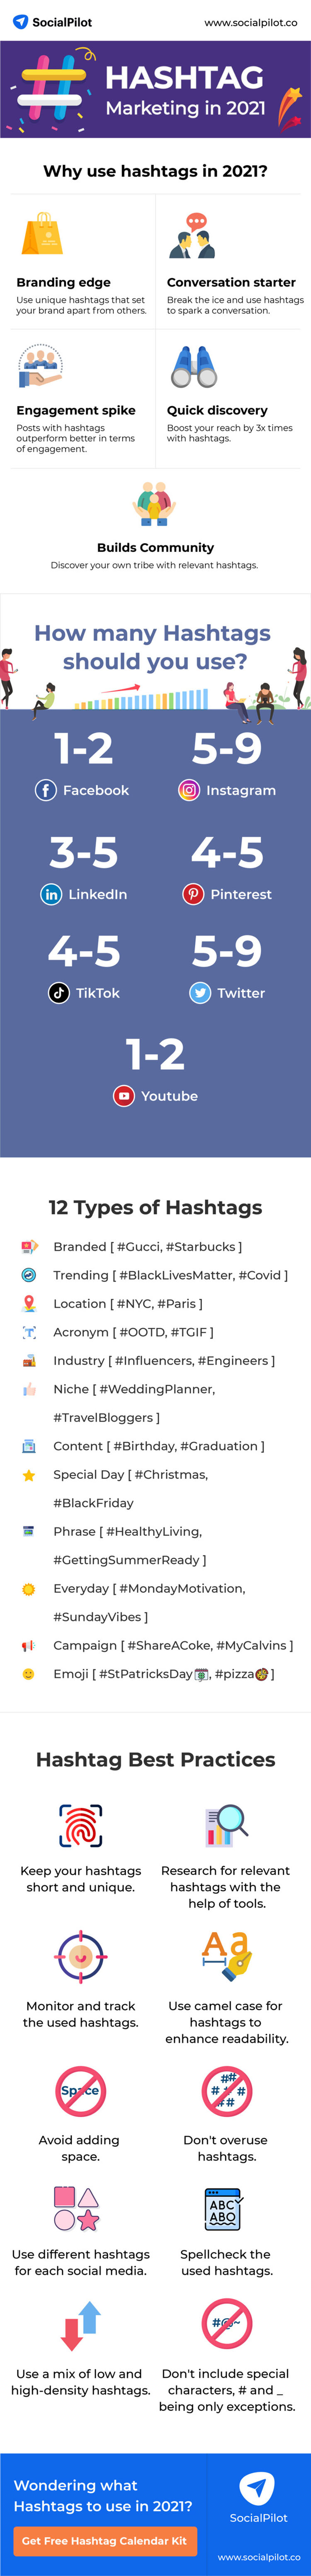 Social Media Hashtags: How to Create A Successful Strategy in 2021